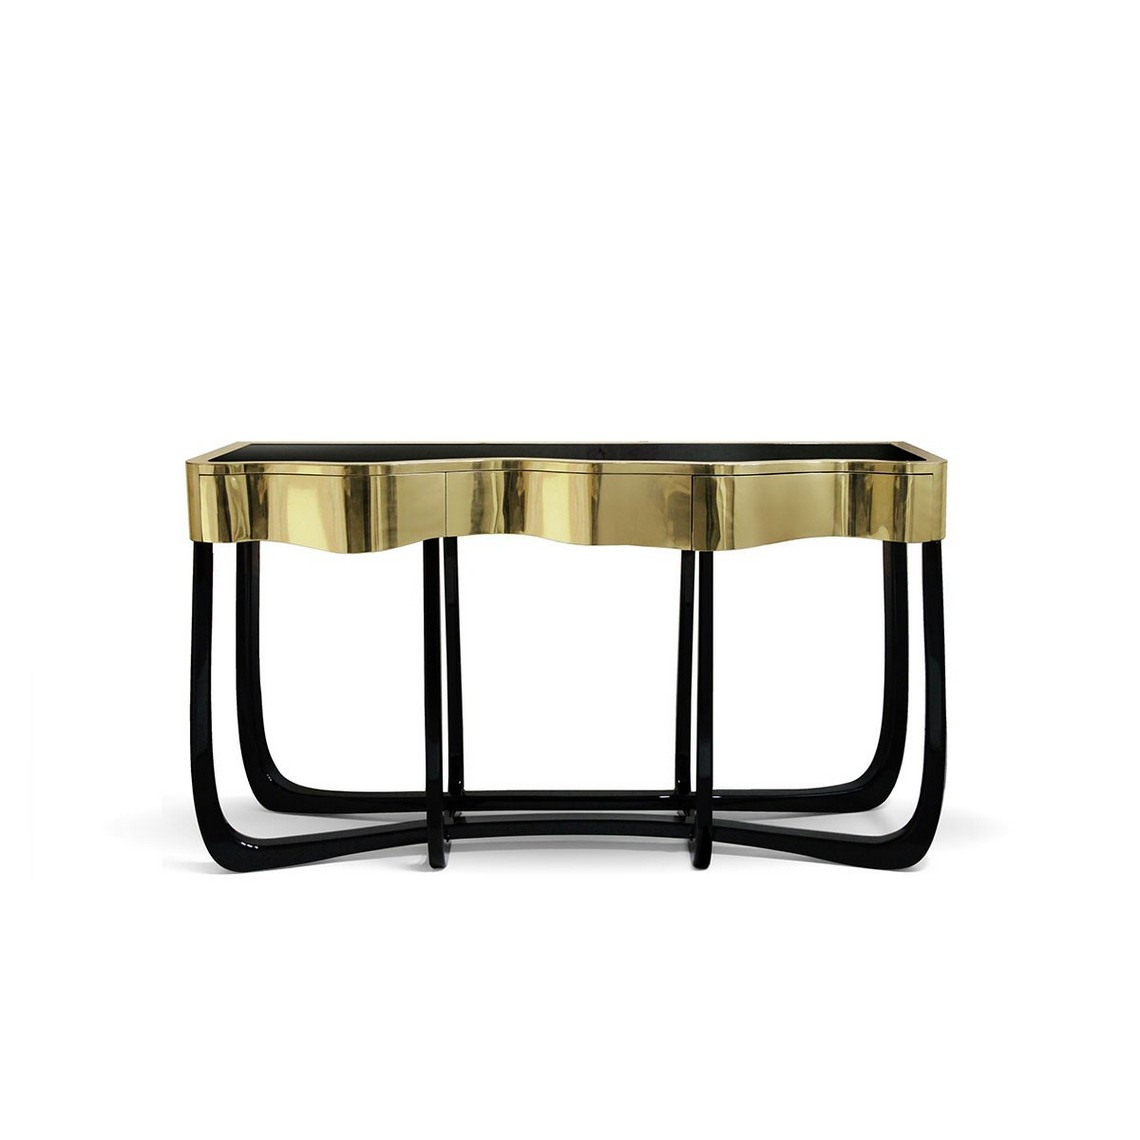 Trendy Console Tables For 2019 trendy console tables Trendy Console Tables For 2019 sinuous 1